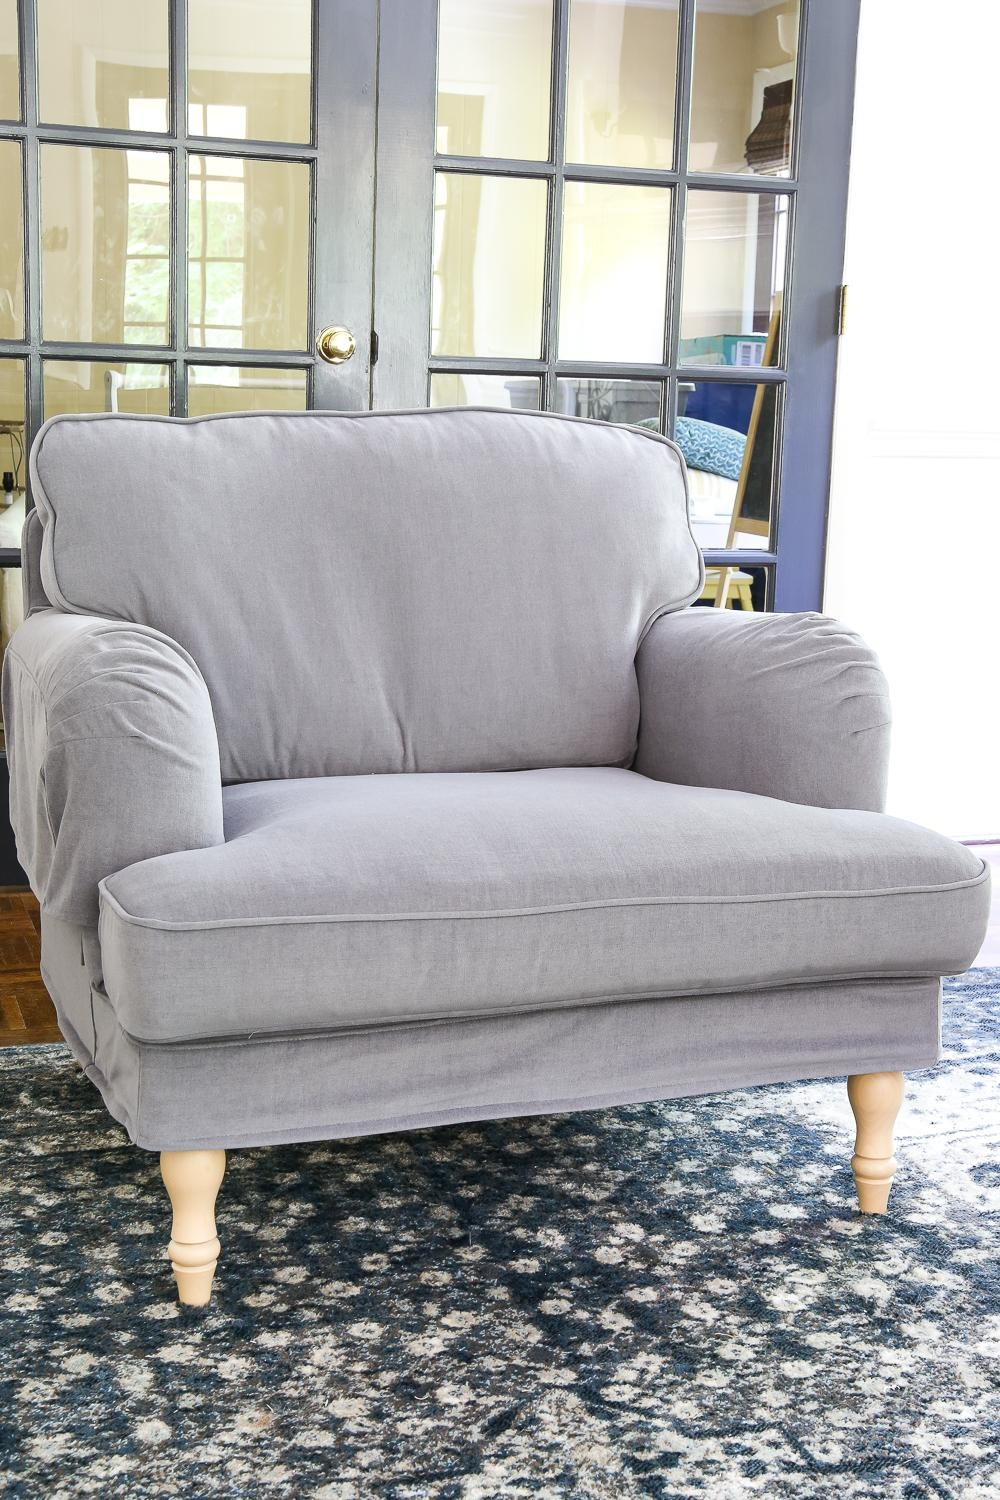 2018 Latest Comfortable Sofas and Chairs